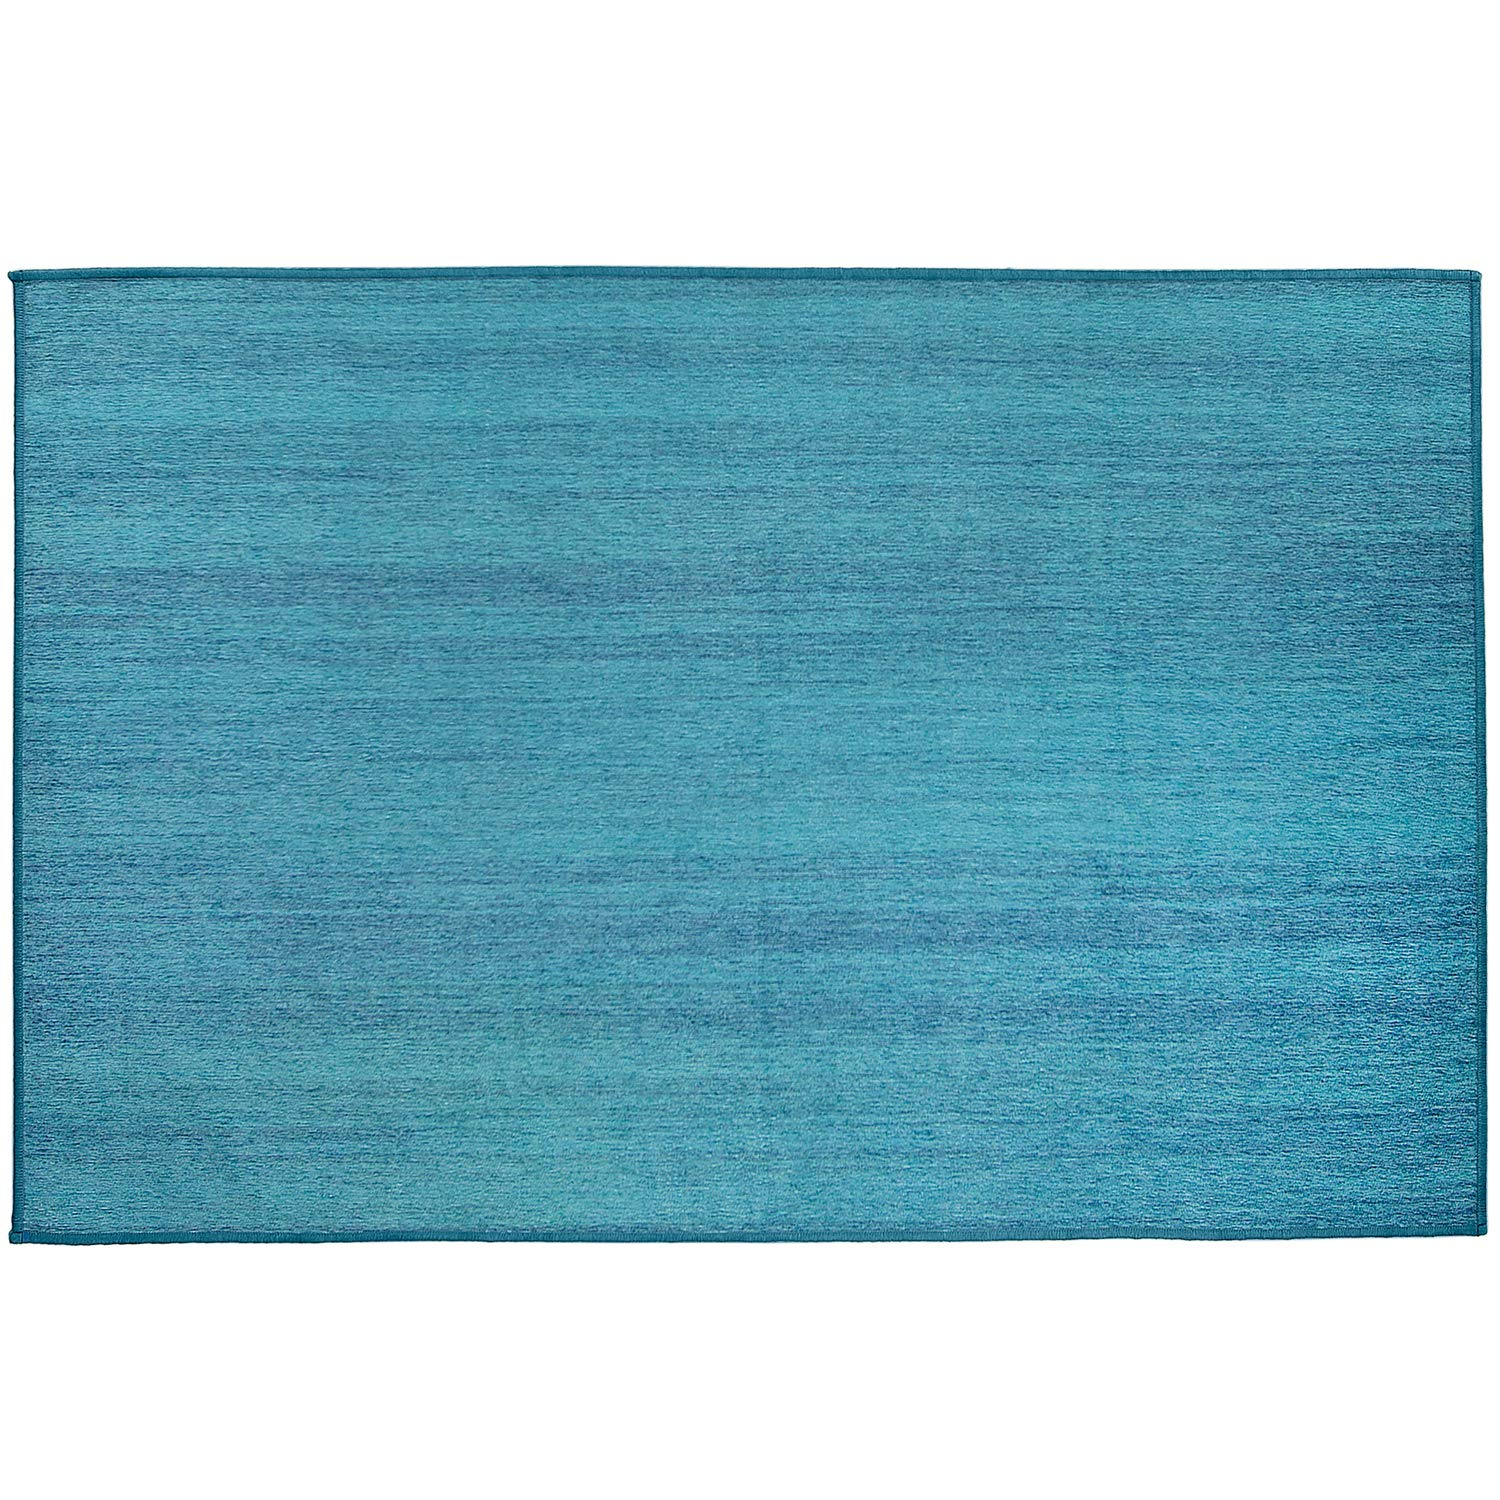 36x60 Cover and Pad Accent Rug 2-Piece Set RUGGABLE 158664 Solid Textured Ocean Blue Washable Indoor//Outdoor Stain Resistant 3x5